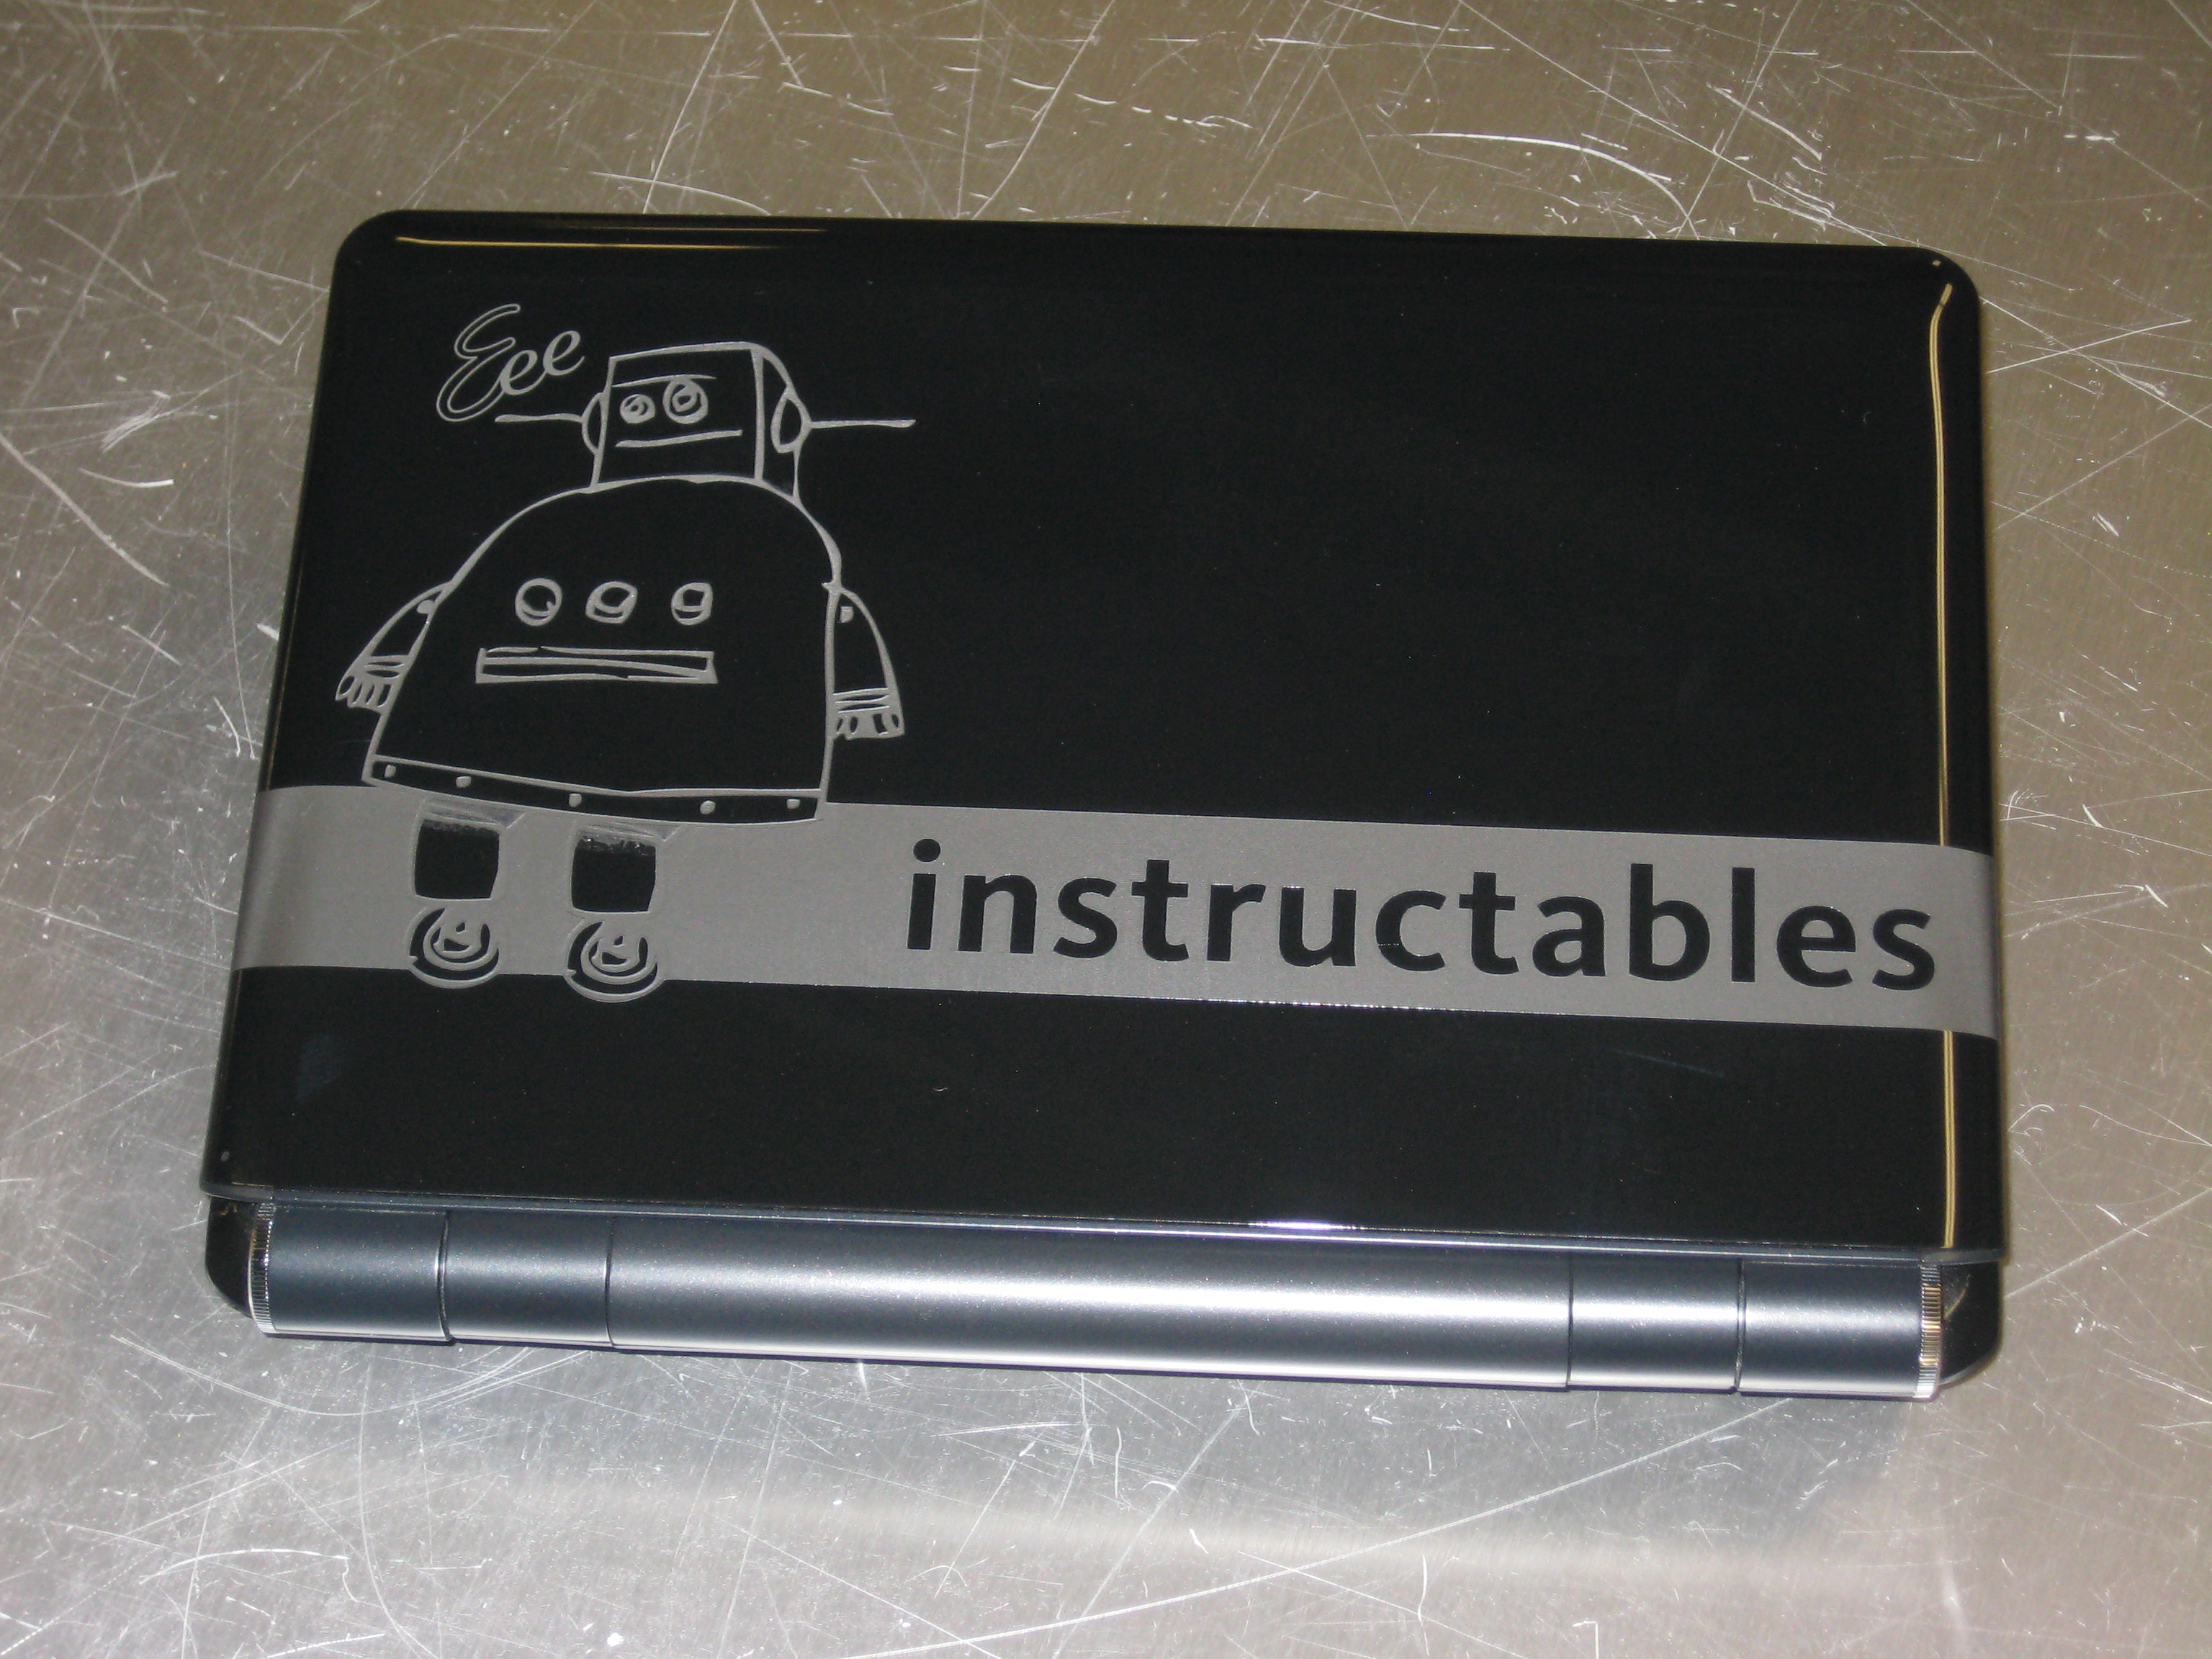 Picture of Instructable Robot etched onto ASUS EeePC